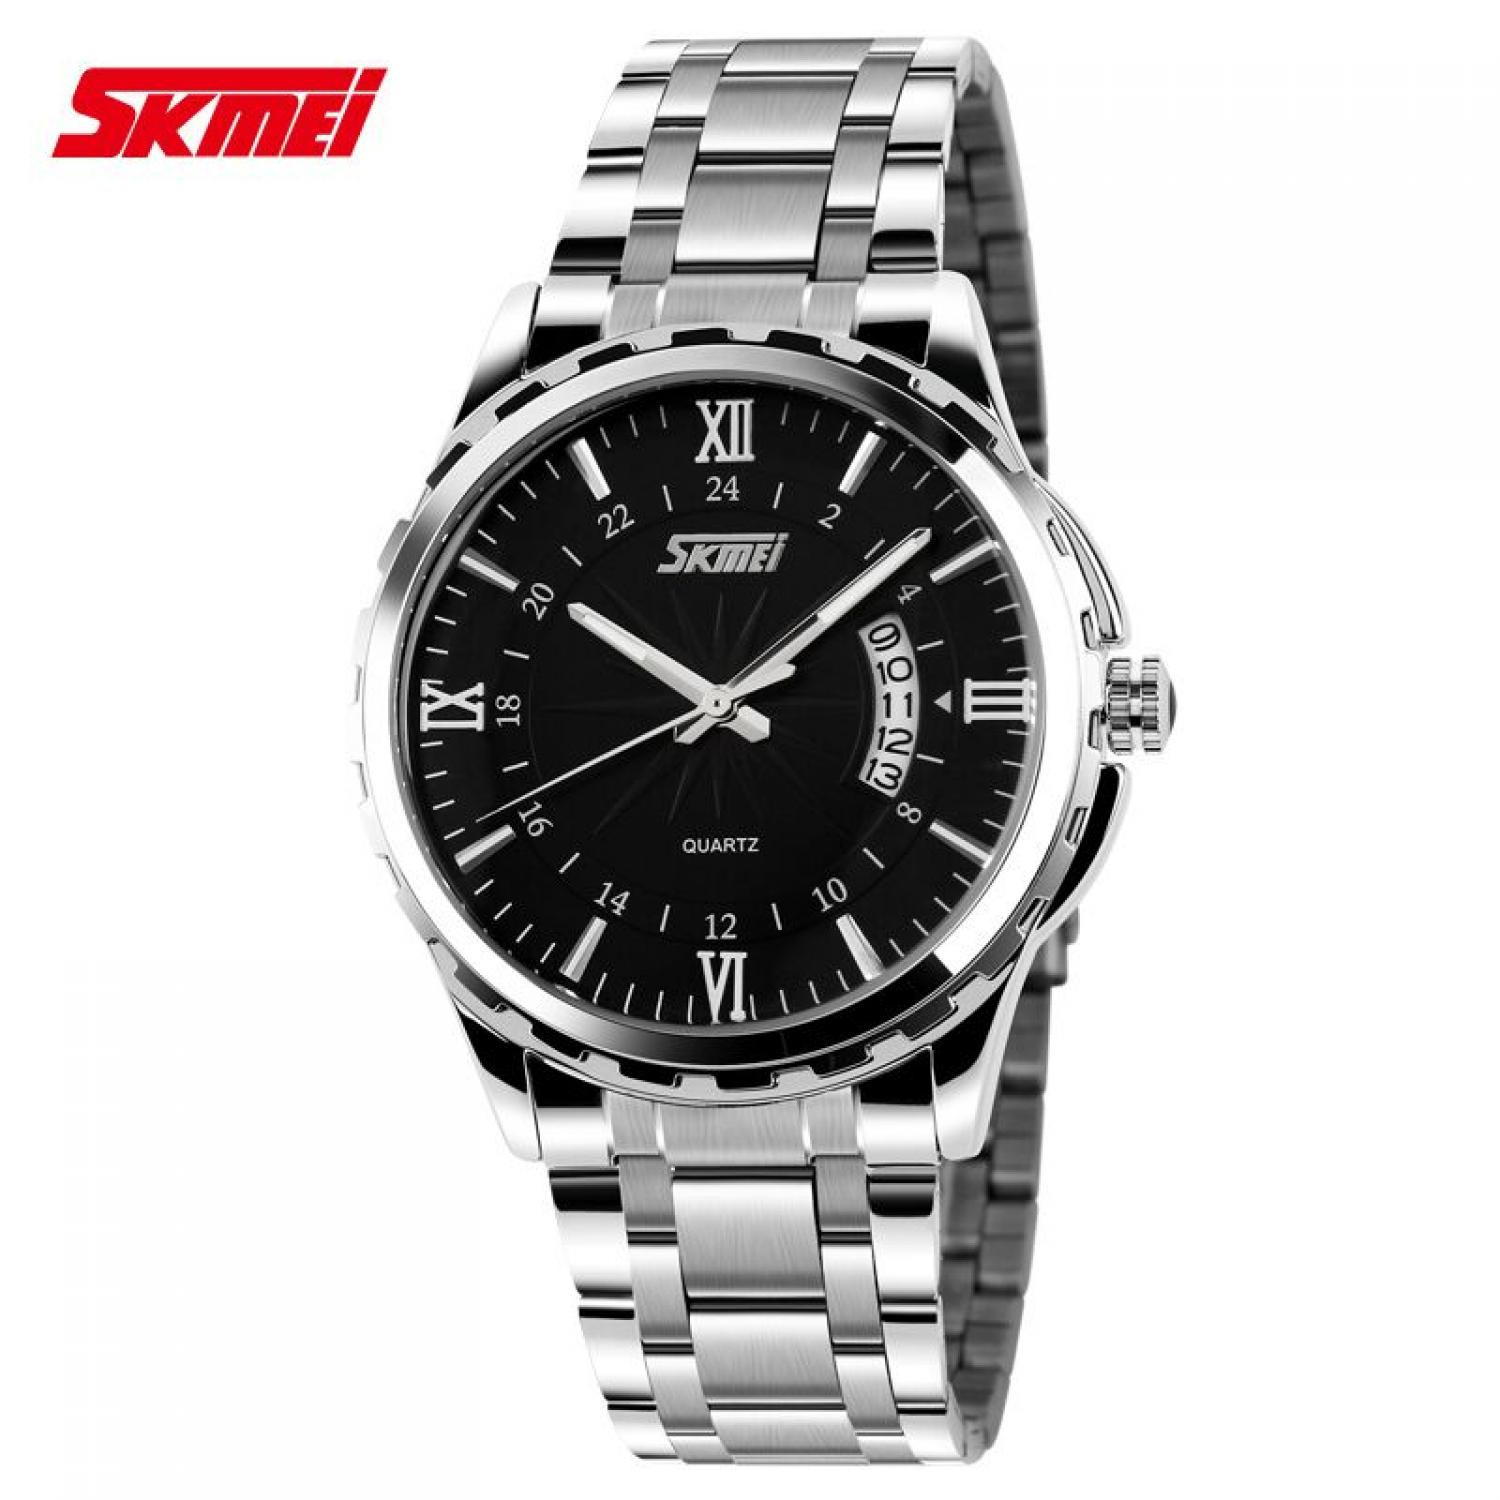 08cd05a5ff8 Jam Tangan Pria SKMEI Analog Casual Men Stainless Strap Original 9069CS  Hitam